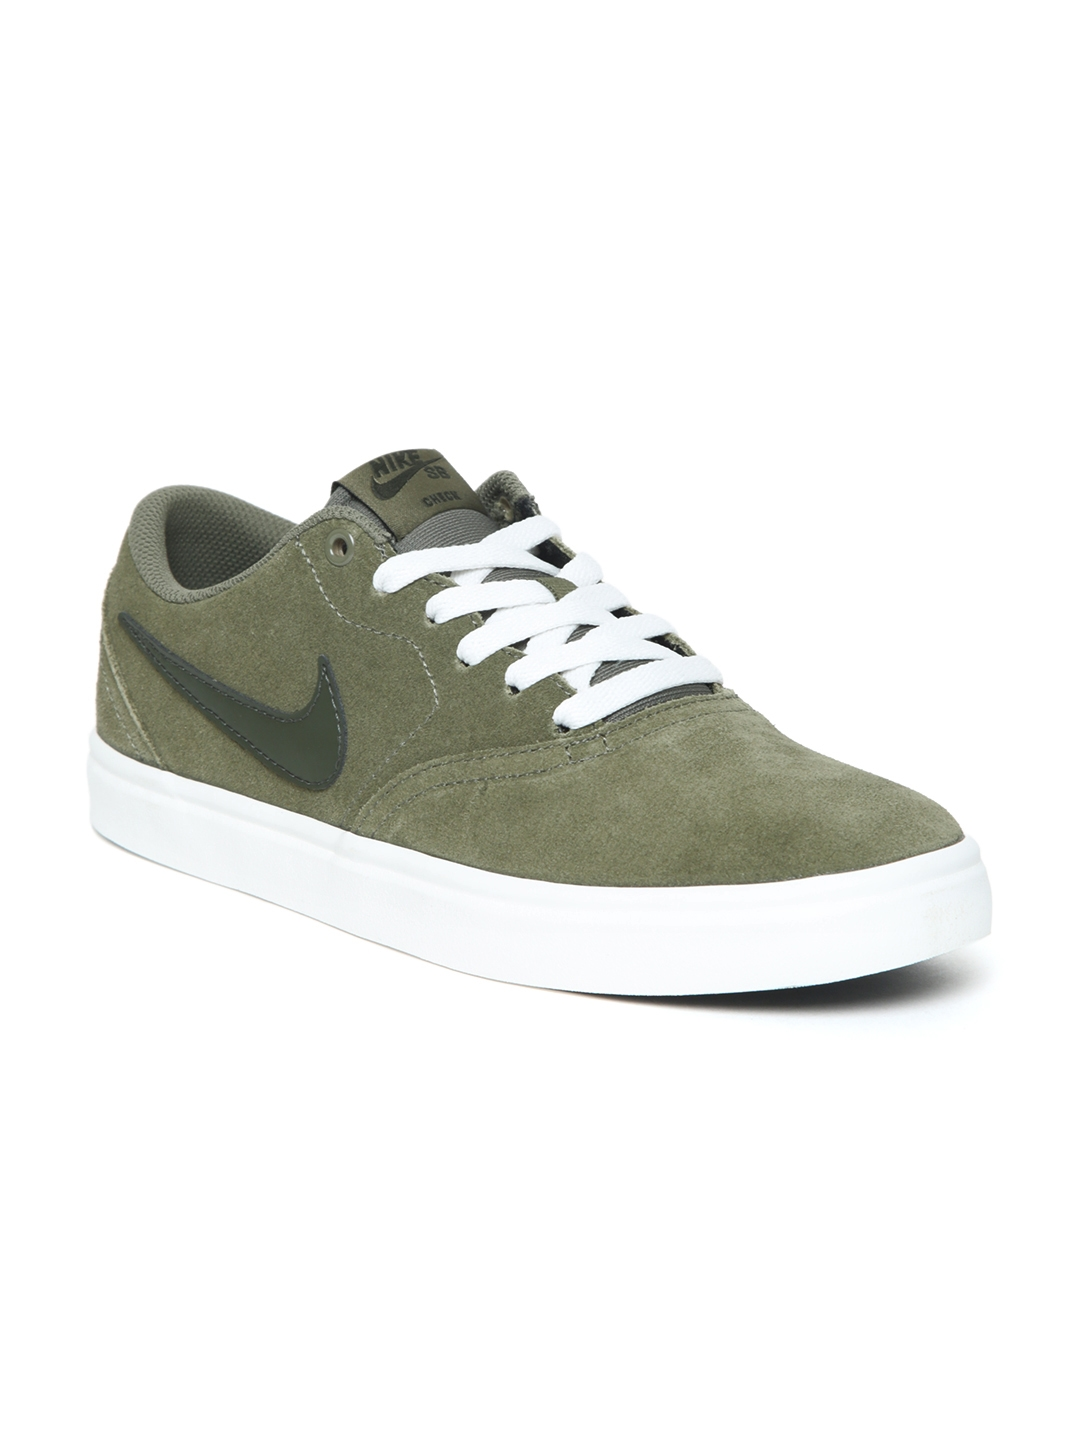 wholesale dealer 5f99b 5b570 Nike Men Olive Green SB CHECK SOLAR Skate Shoes